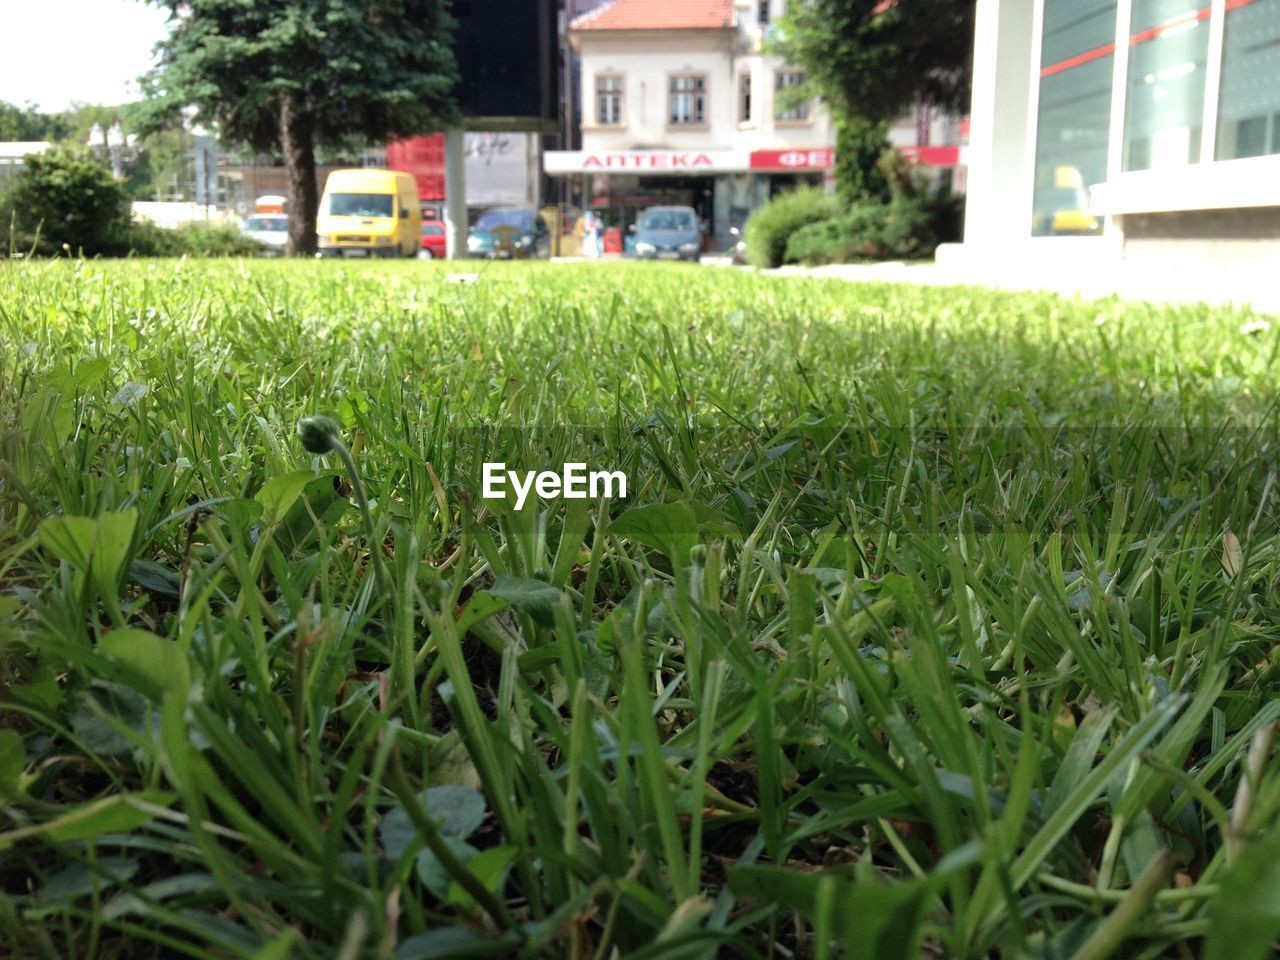 grass, green color, architecture, growth, outdoors, building exterior, day, no people, nature, tree, close-up, city